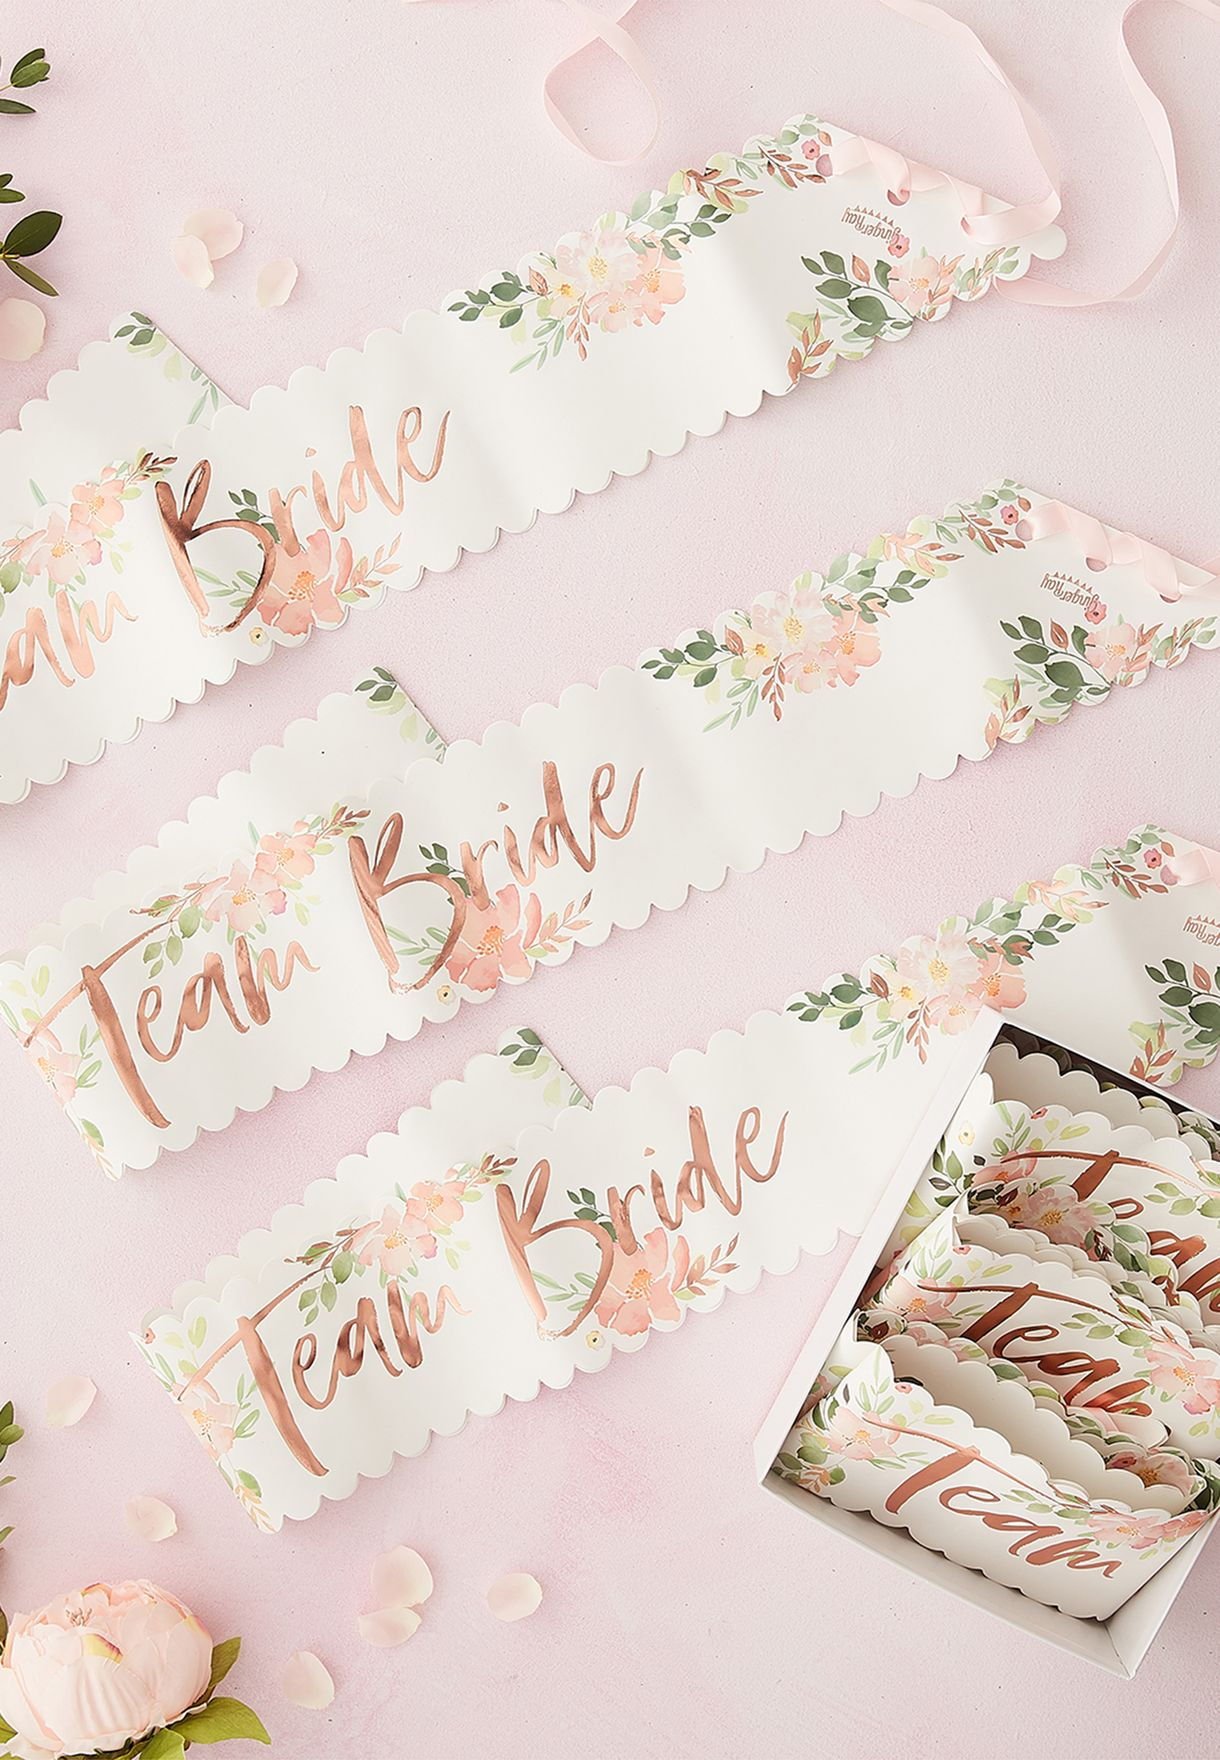 6 Pack Team Bride Sashes